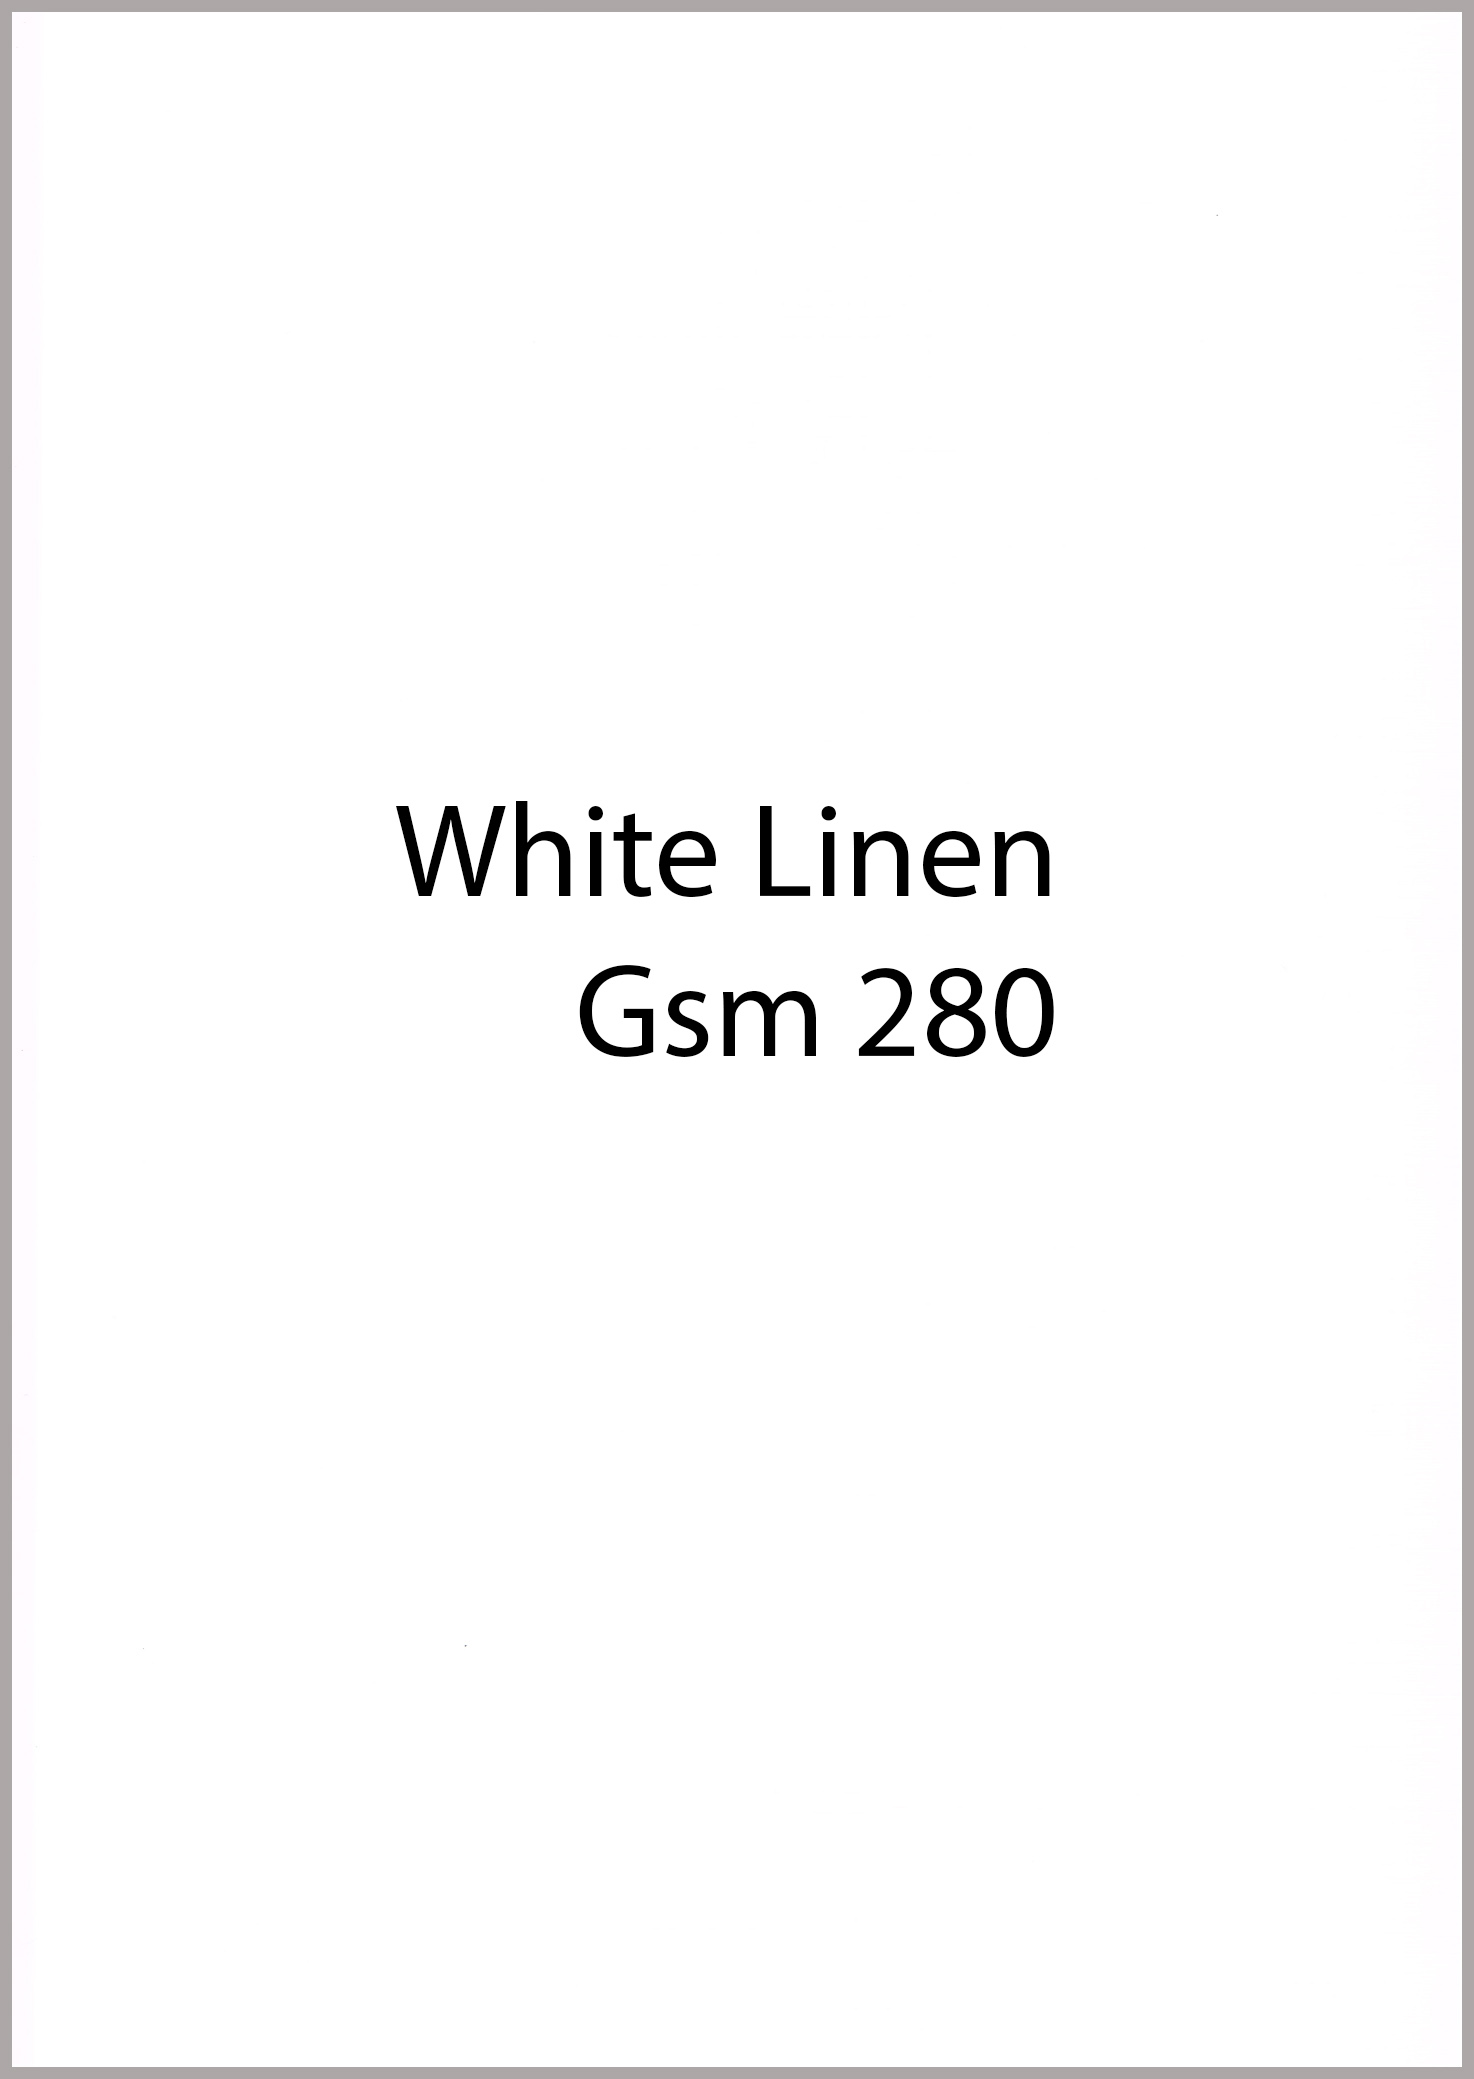 A4 280 gsm white card linen pack 10